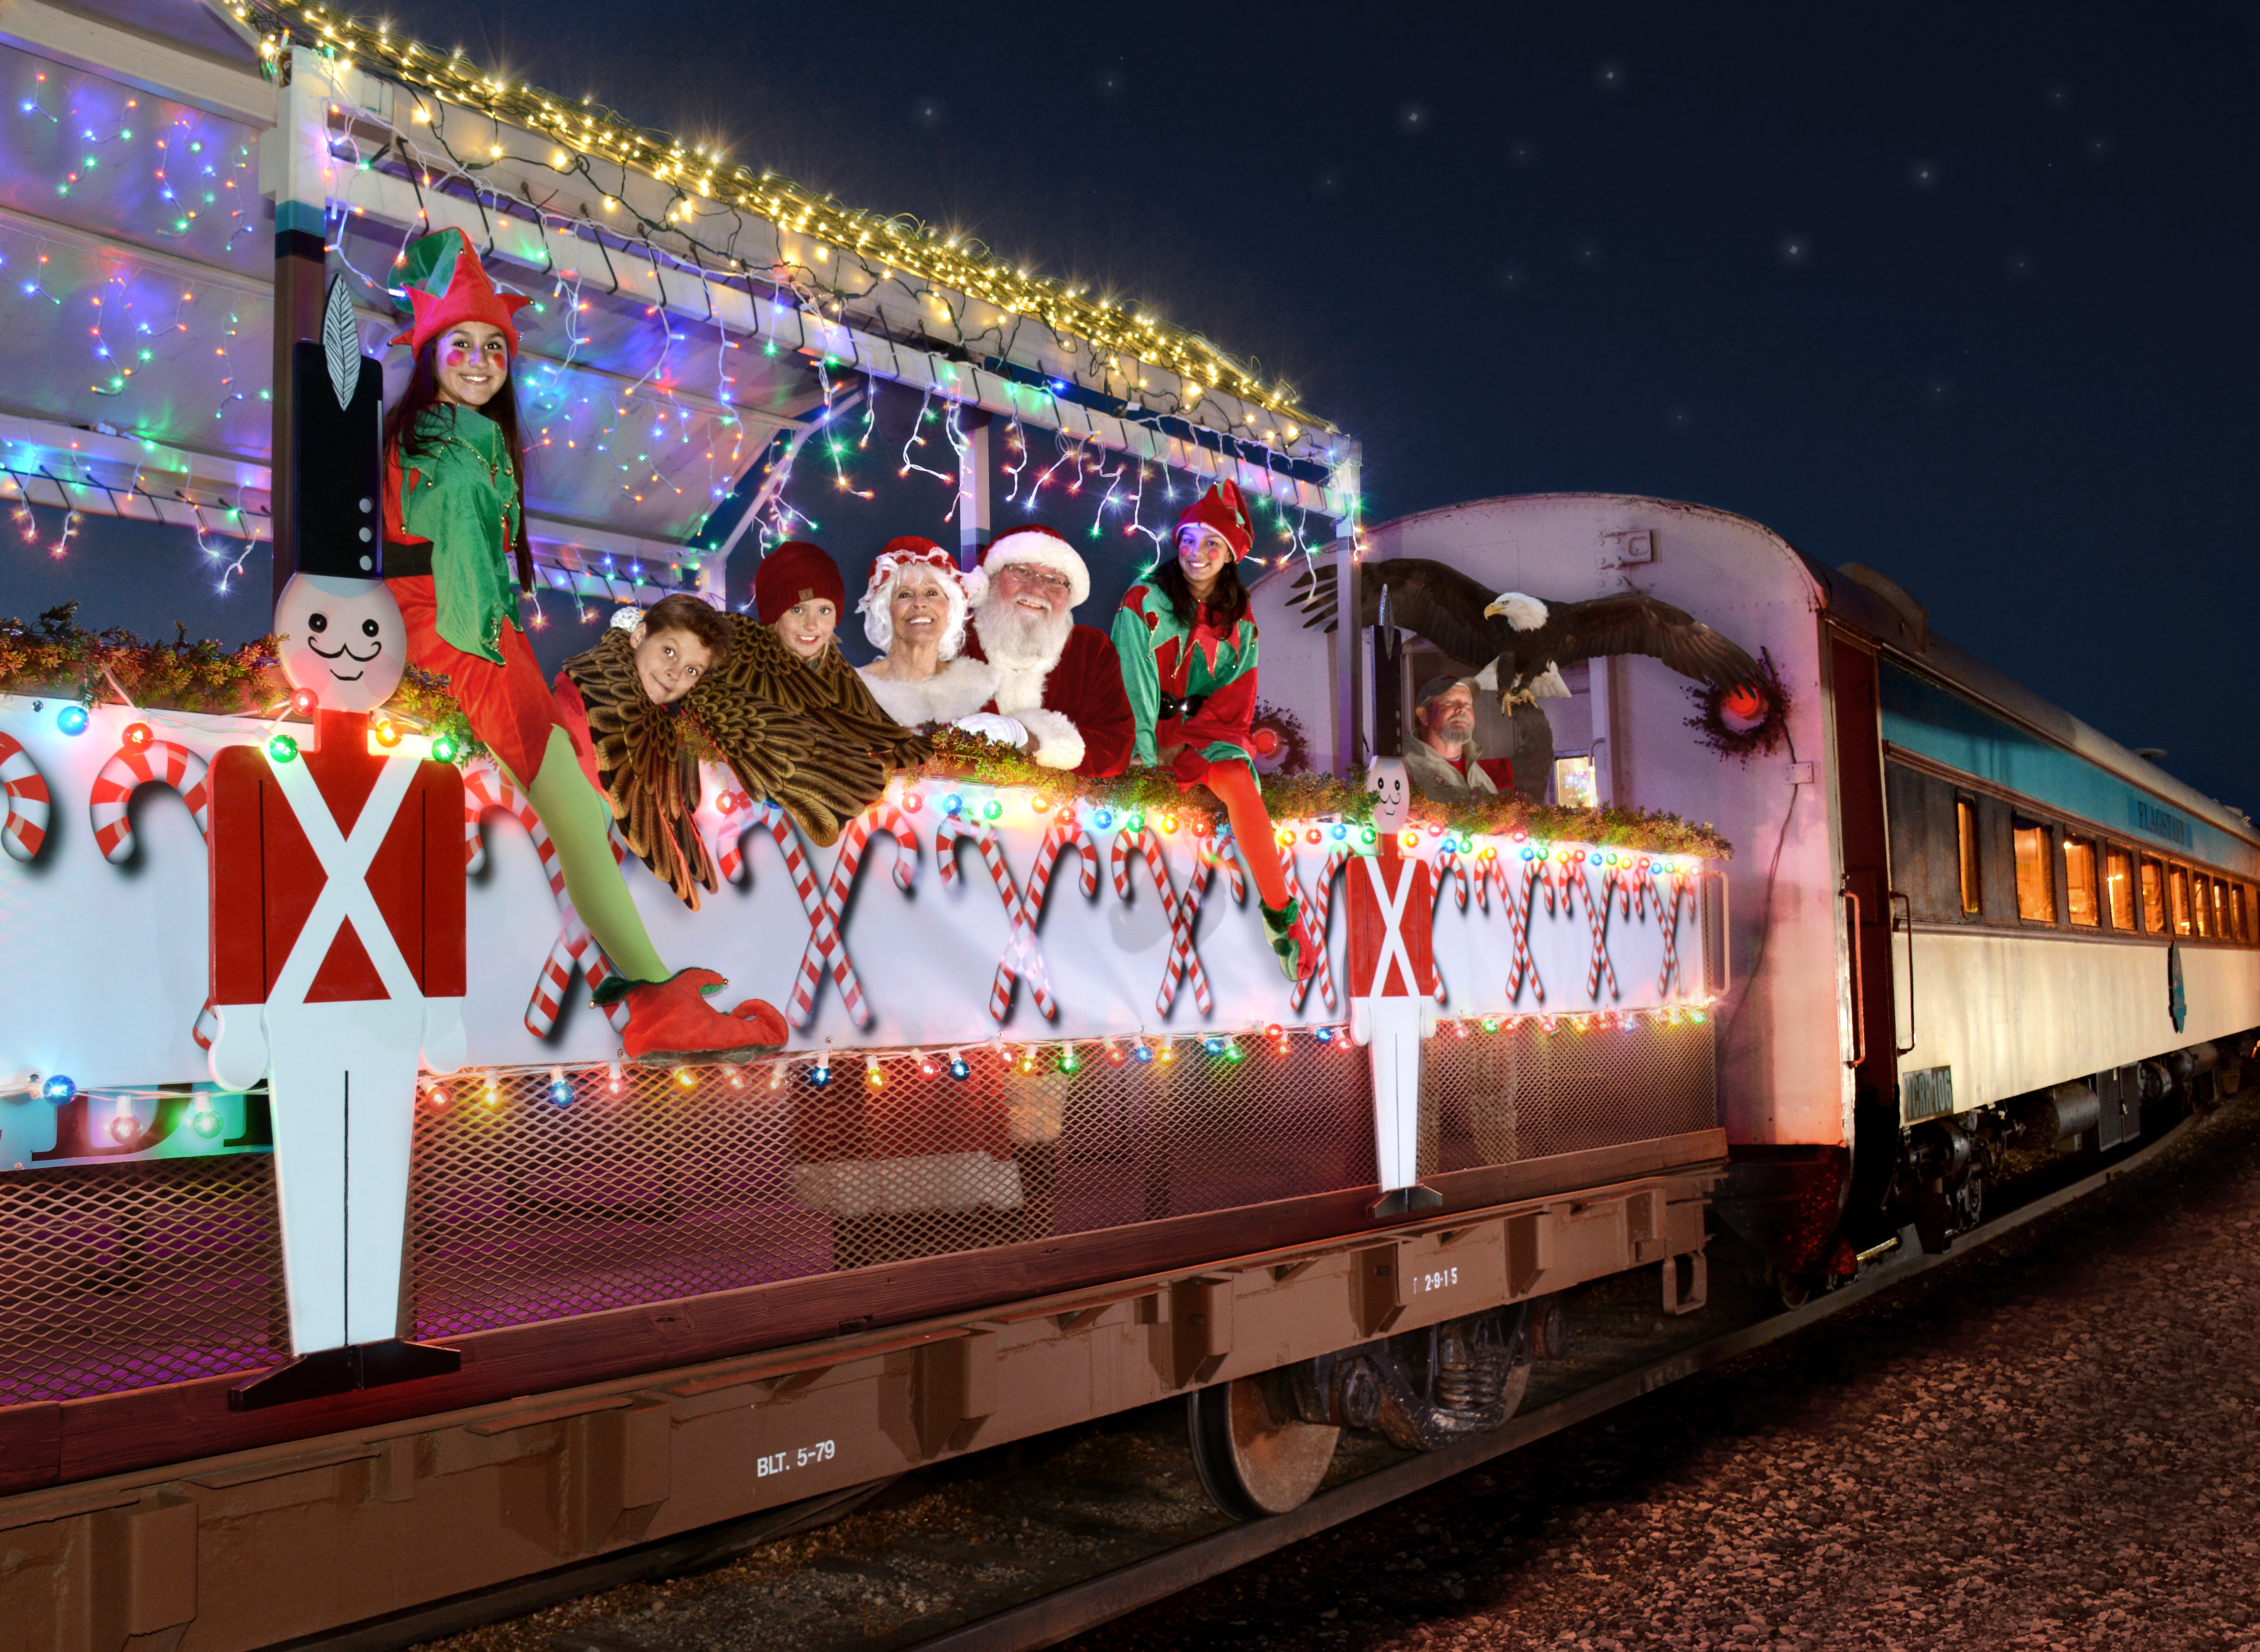 VCRR Christmas Train 4787-71-49 V3 RGB print